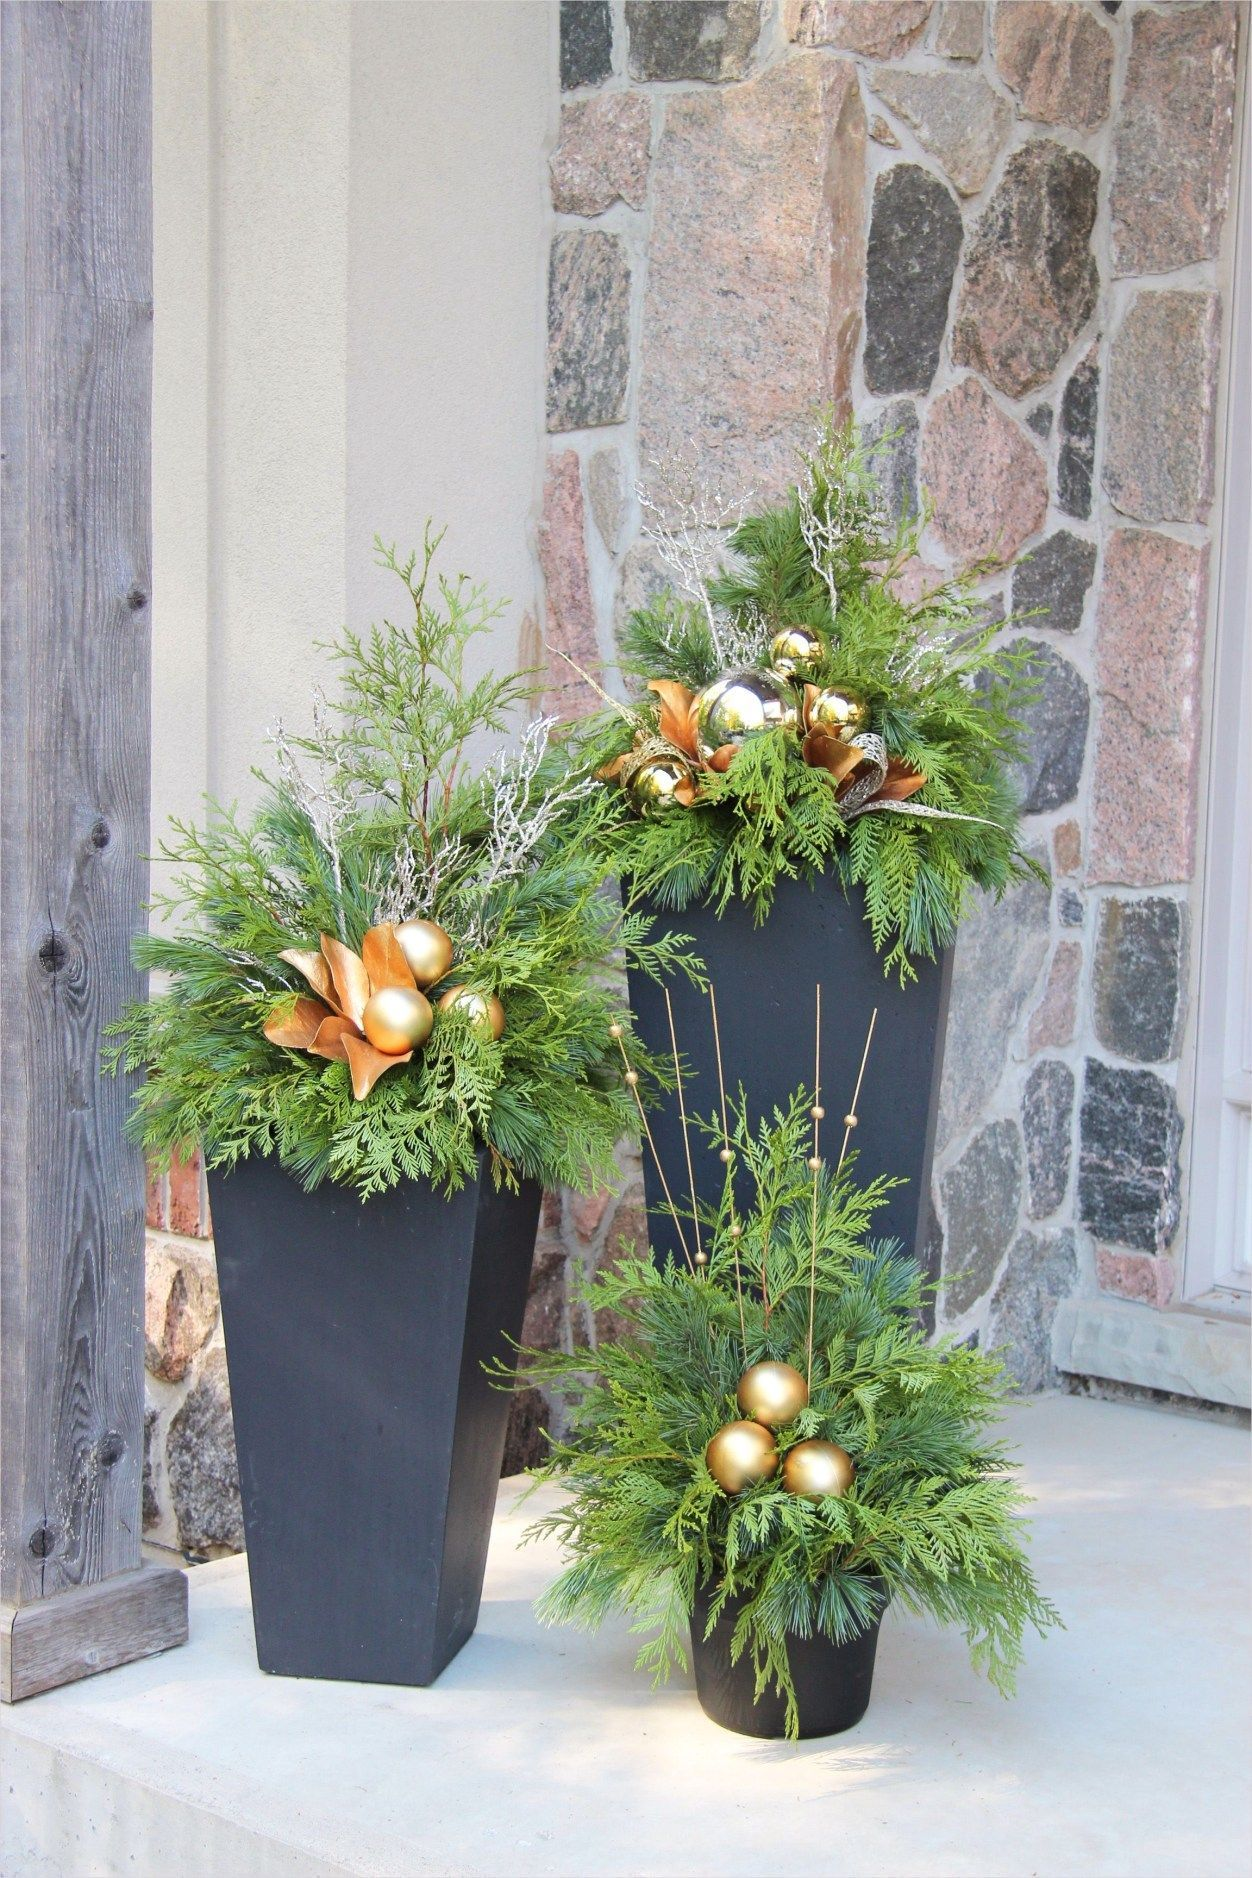 29 The Best Christmas Garden Decorations You Need To Try This Year